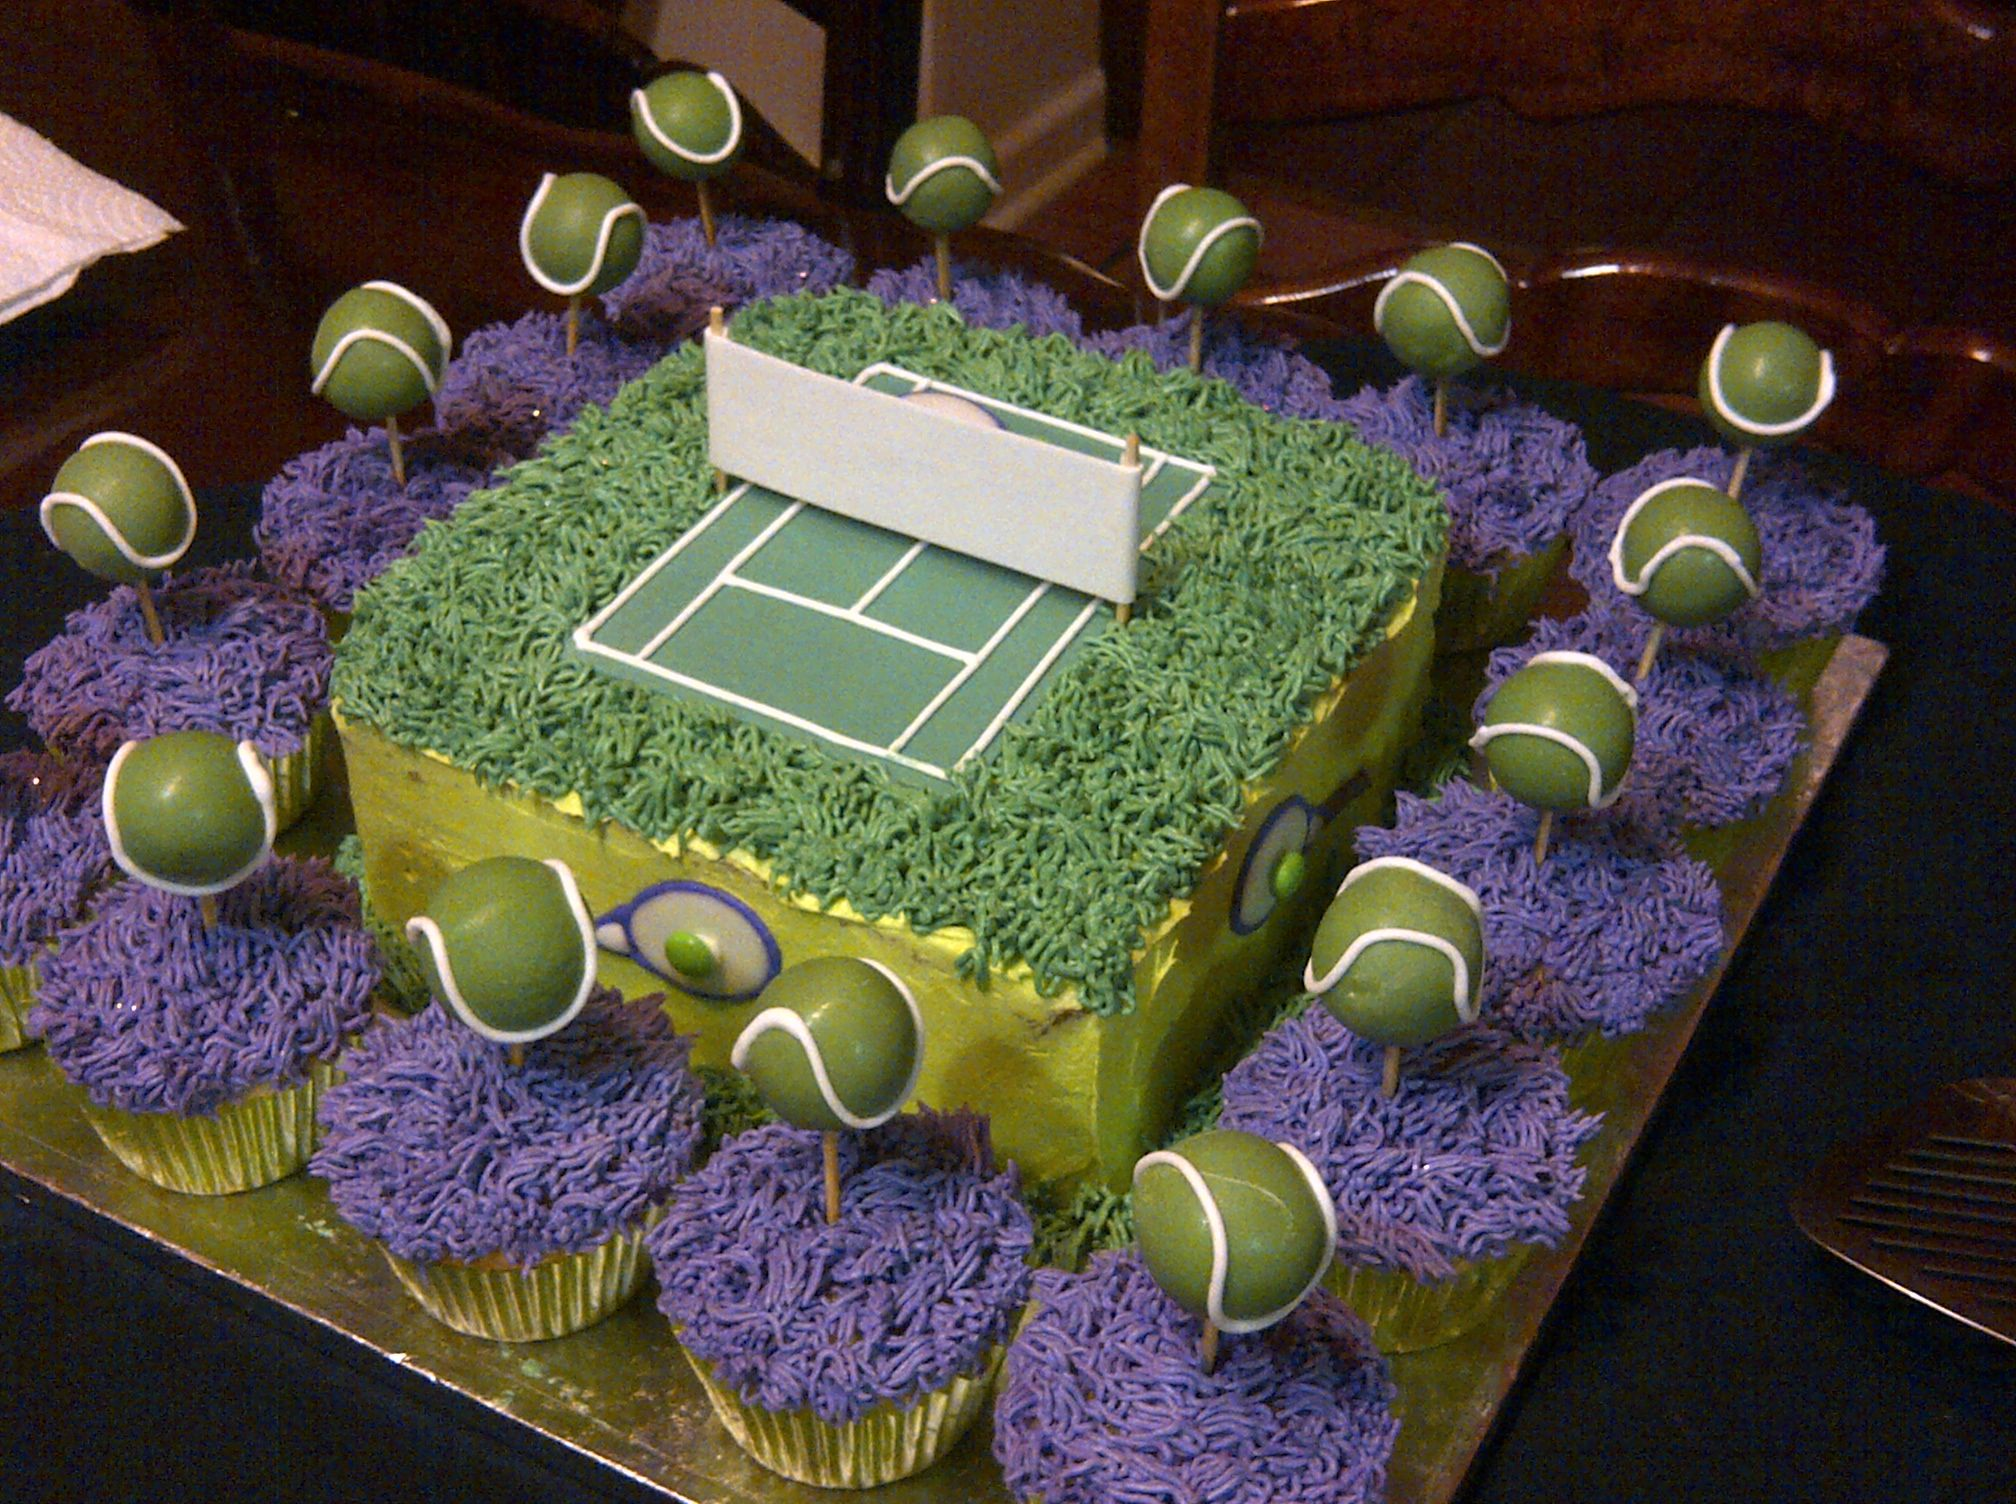 Tennis Court Cake With Cupcakes And Cakepop Tennis Balls